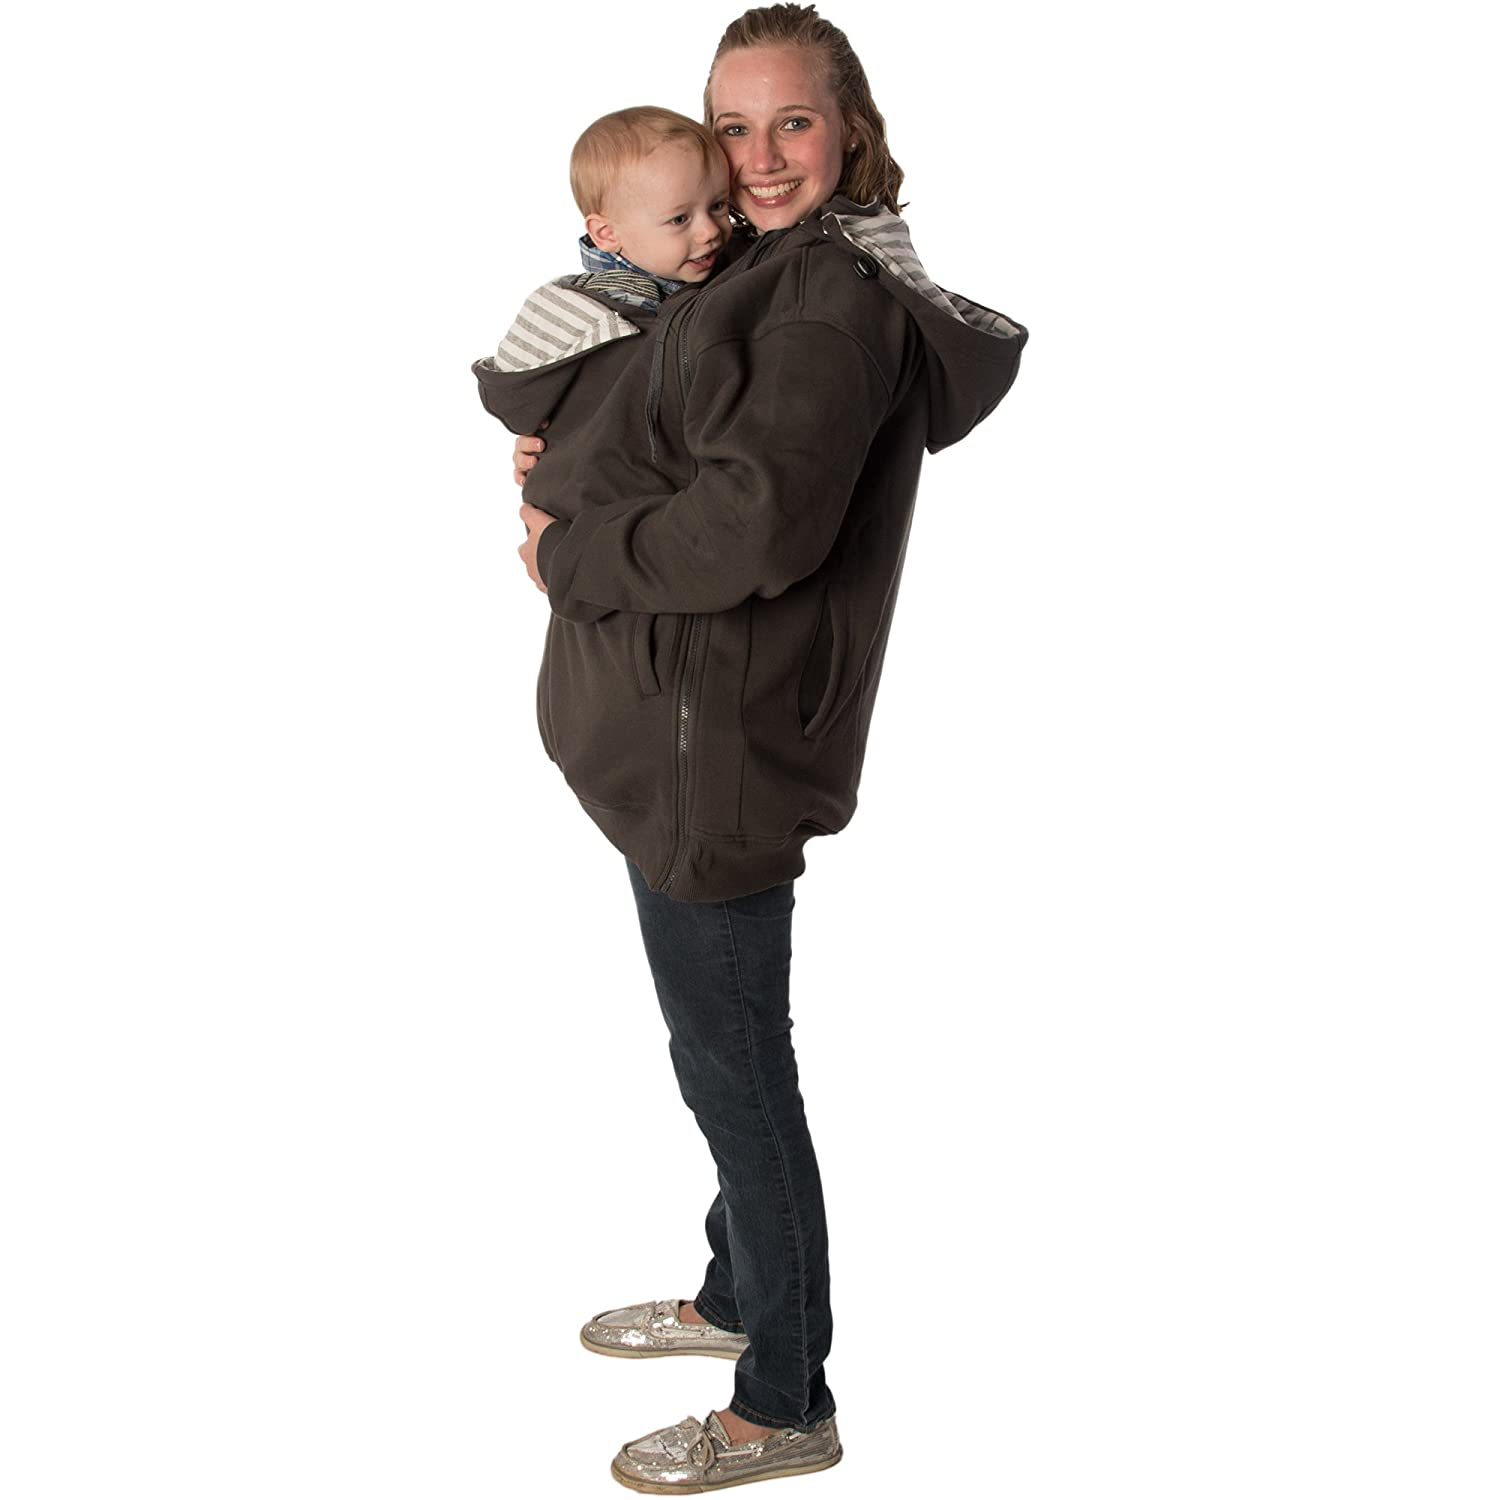 RooCoat Babywearing Maternity Coat 2.0 Charcoal with Gray Stripes Large